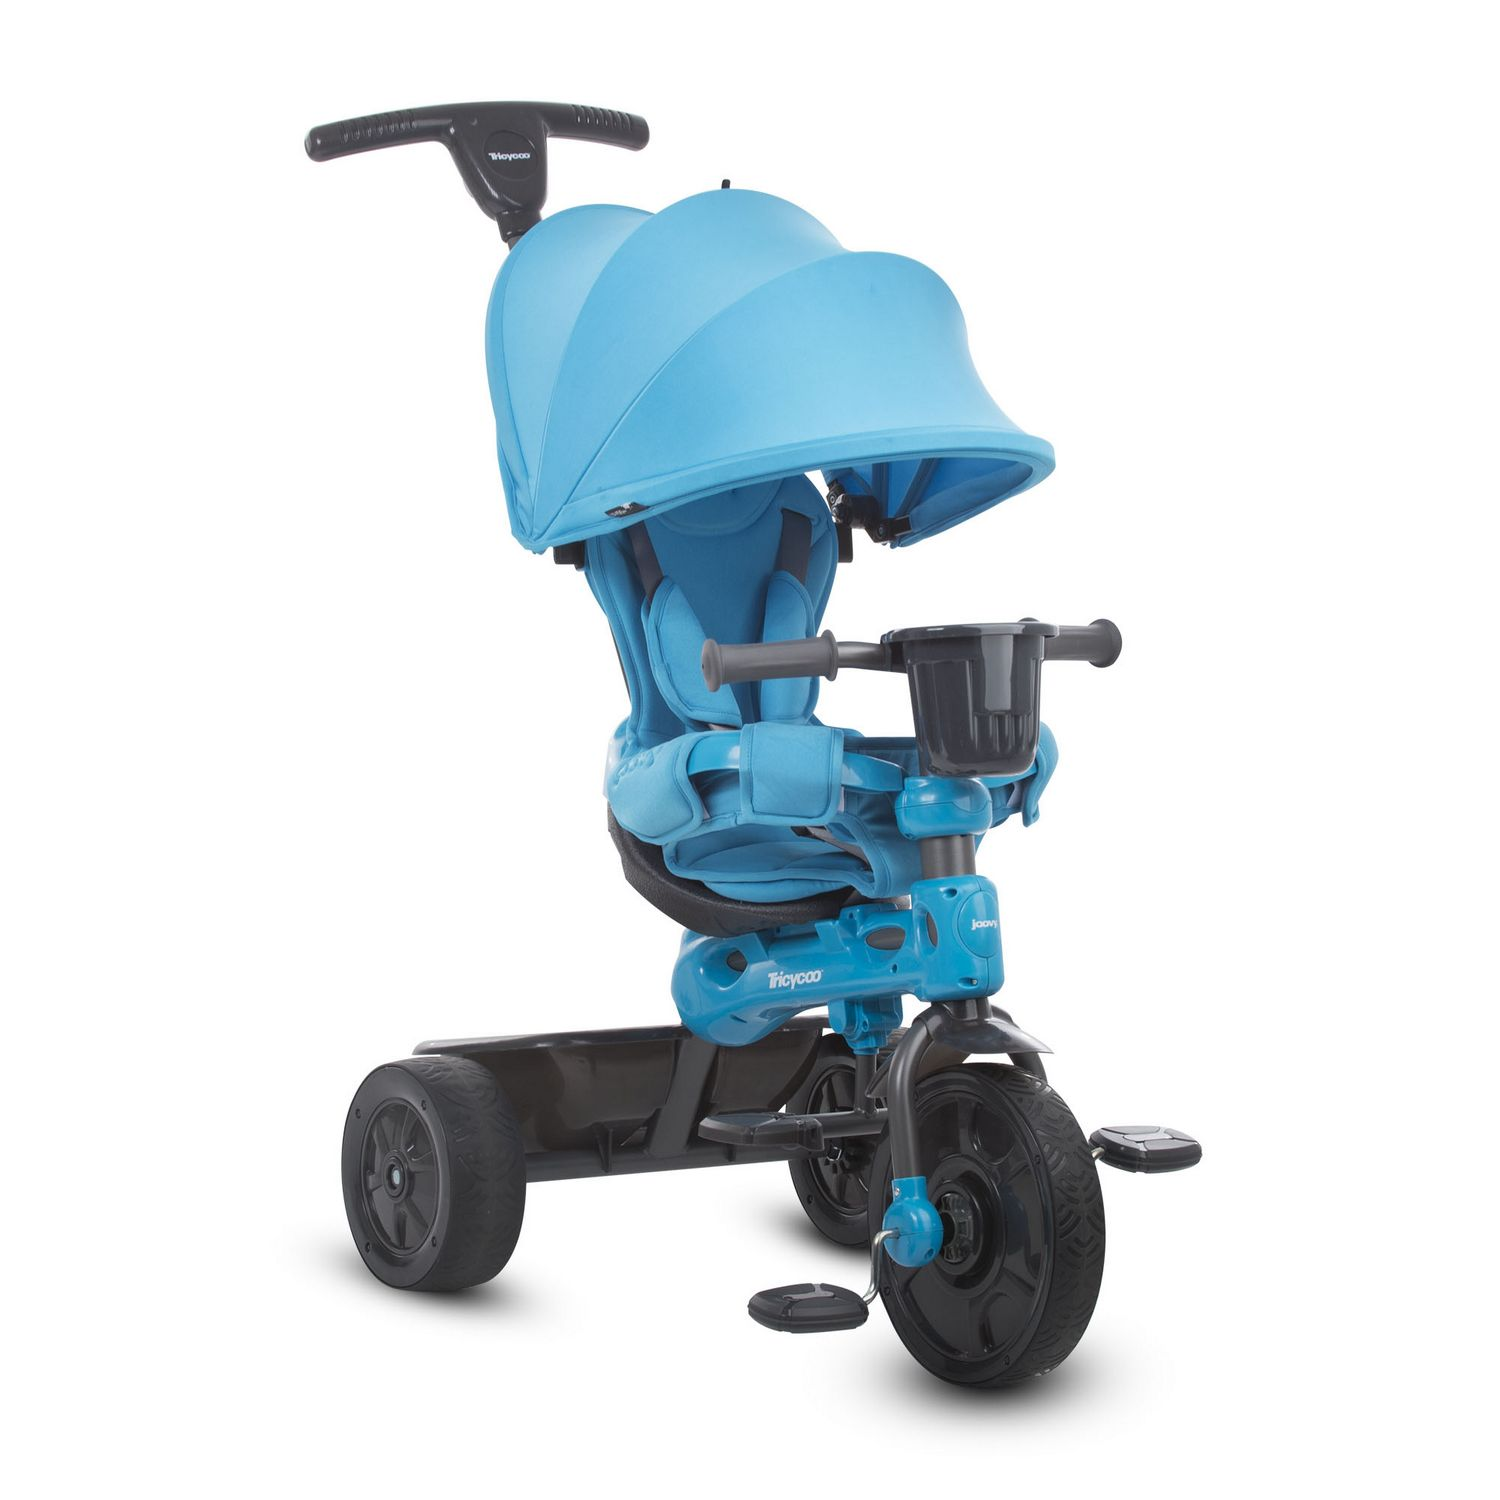 Joovy Tricycoo 4.1 4-in-1 Tricycle in Blue